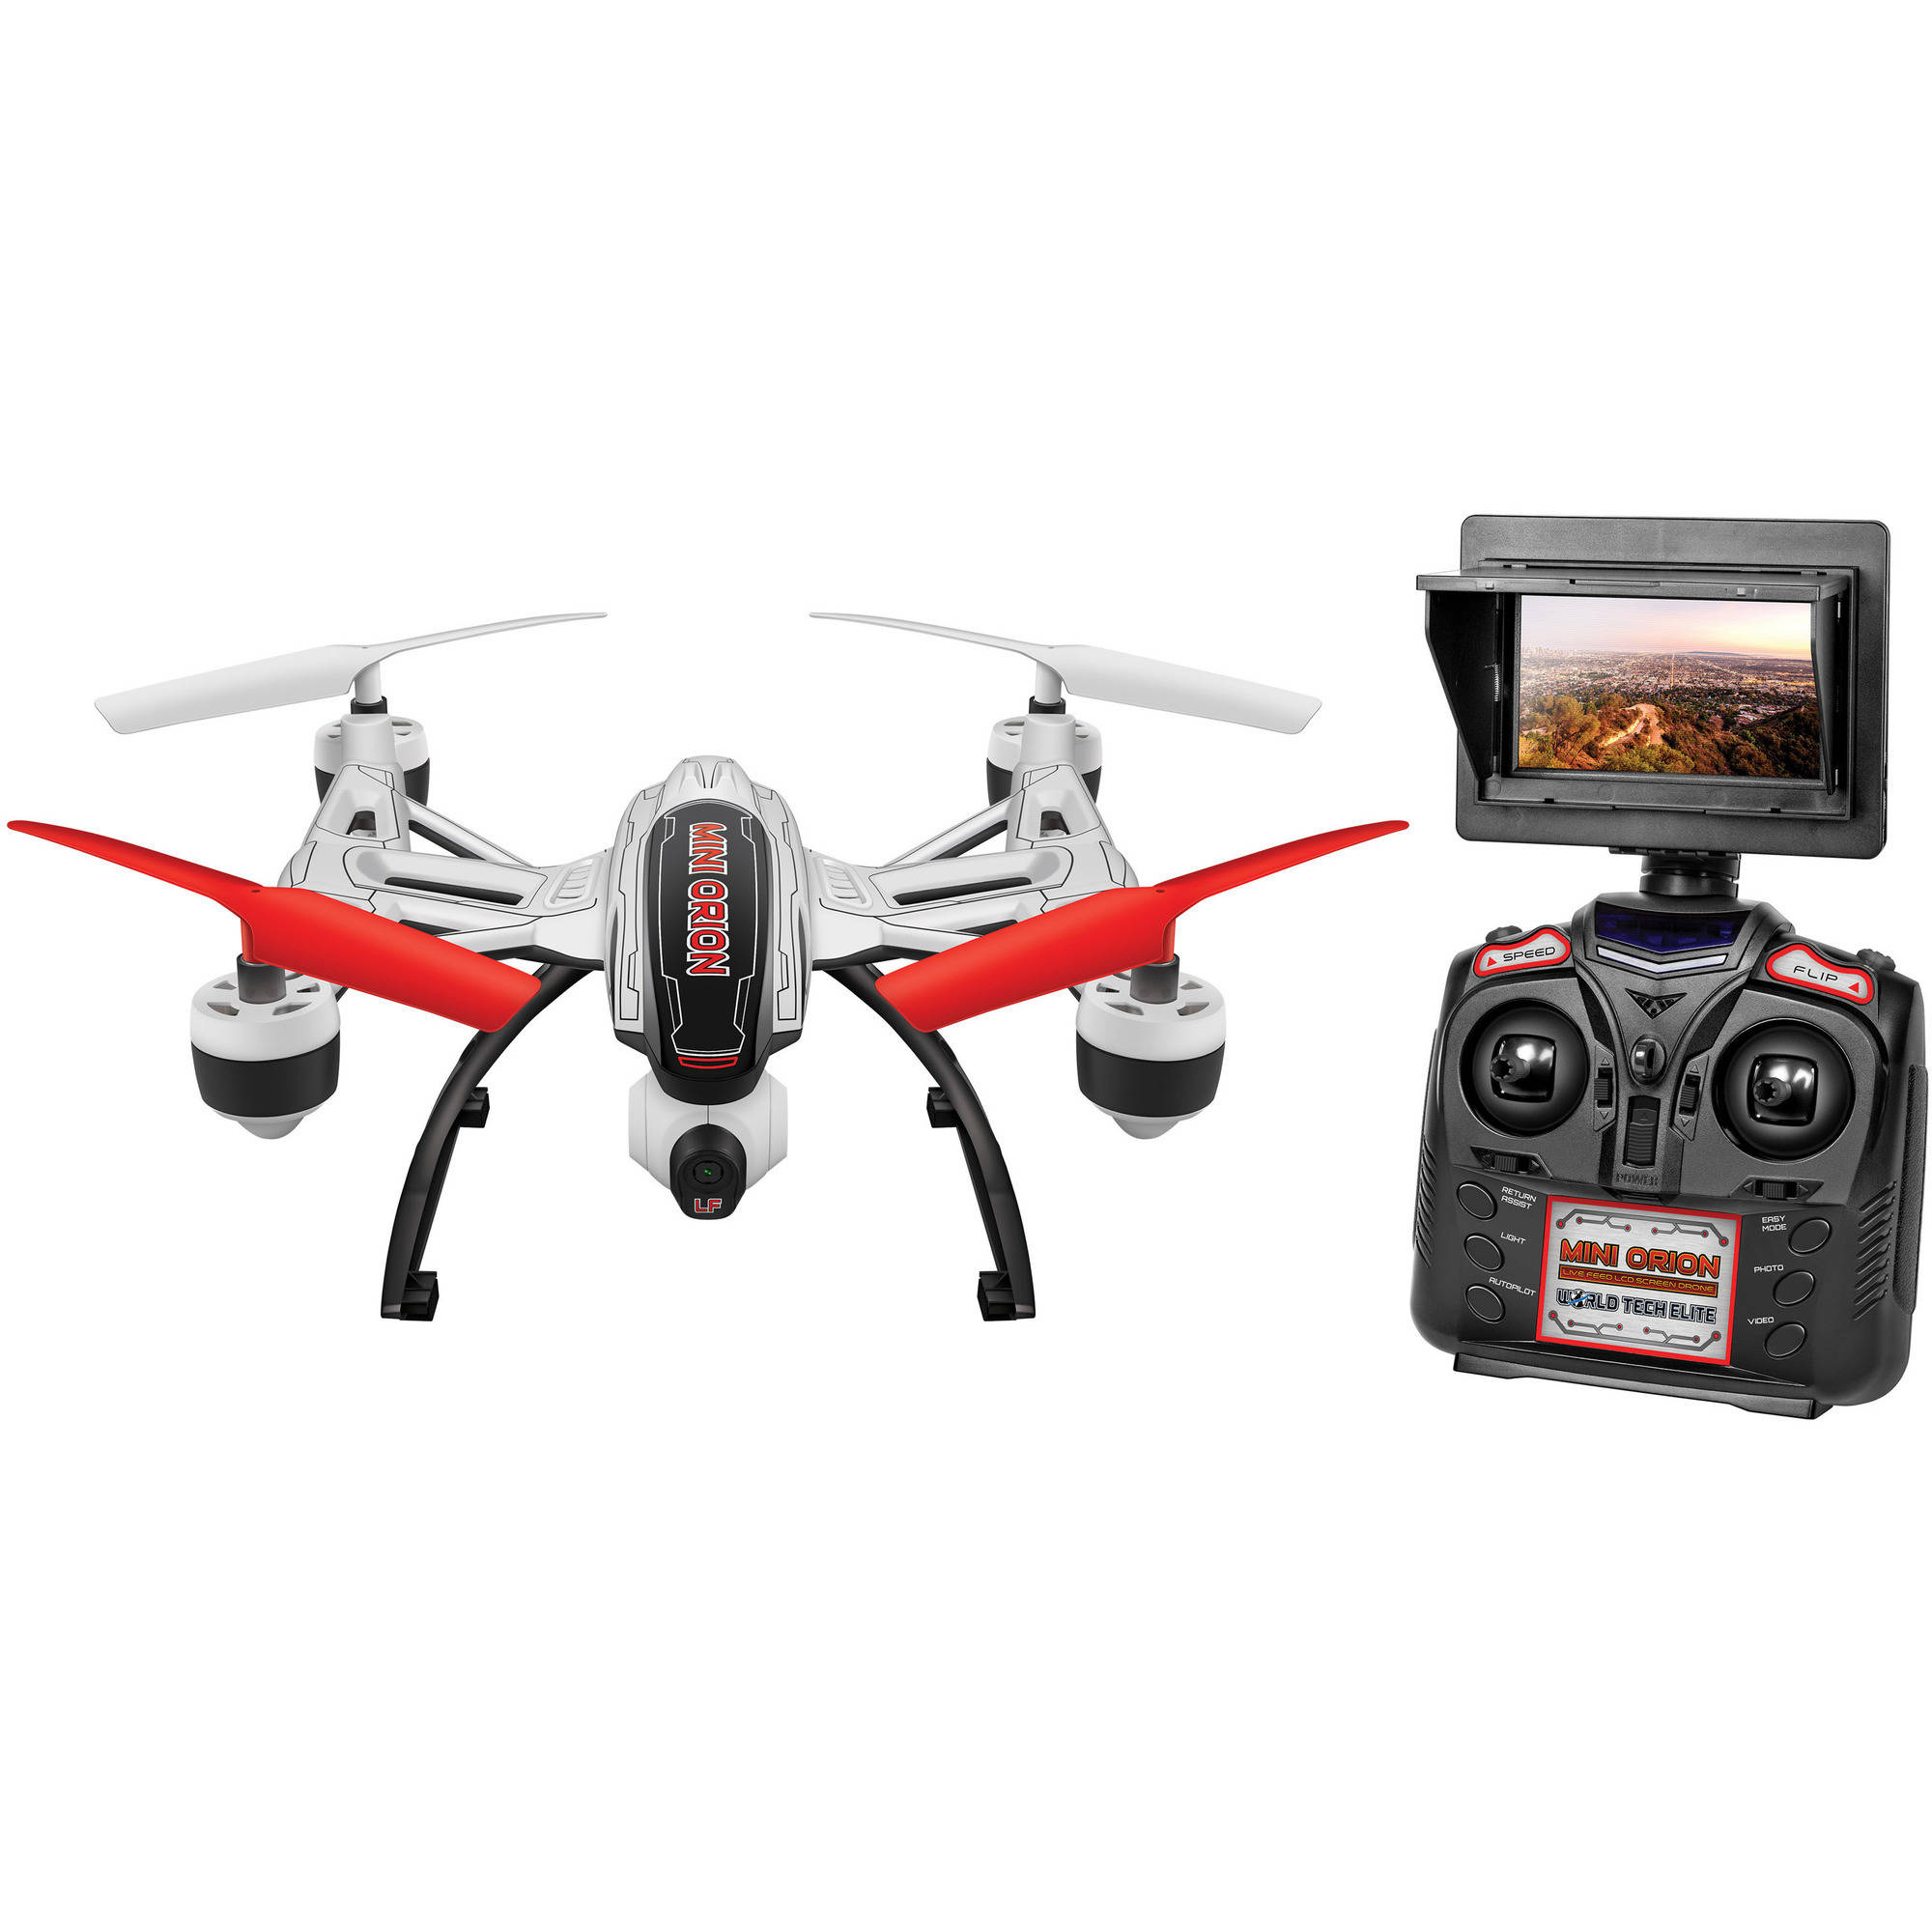 Mini Orion Camera Drone Live Feed LCD Screen 2.4GHz 4.5-Channel R C Quadcopter by World Tech Toys